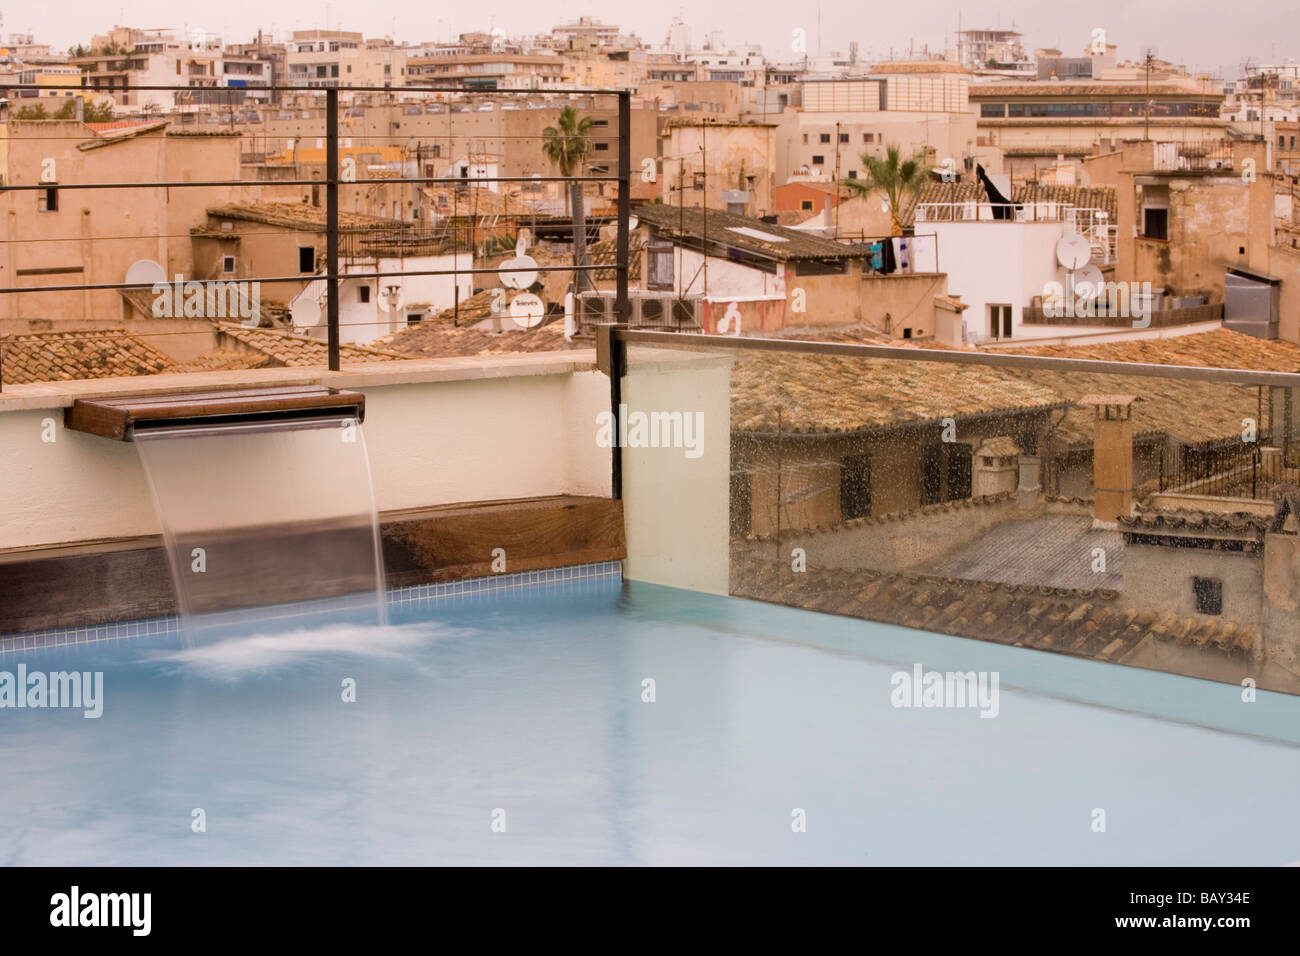 Plunge Pool on Rooftop of Hotel Tres, Palma, Mallorca, Balearic Islands, Spain - Stock Image